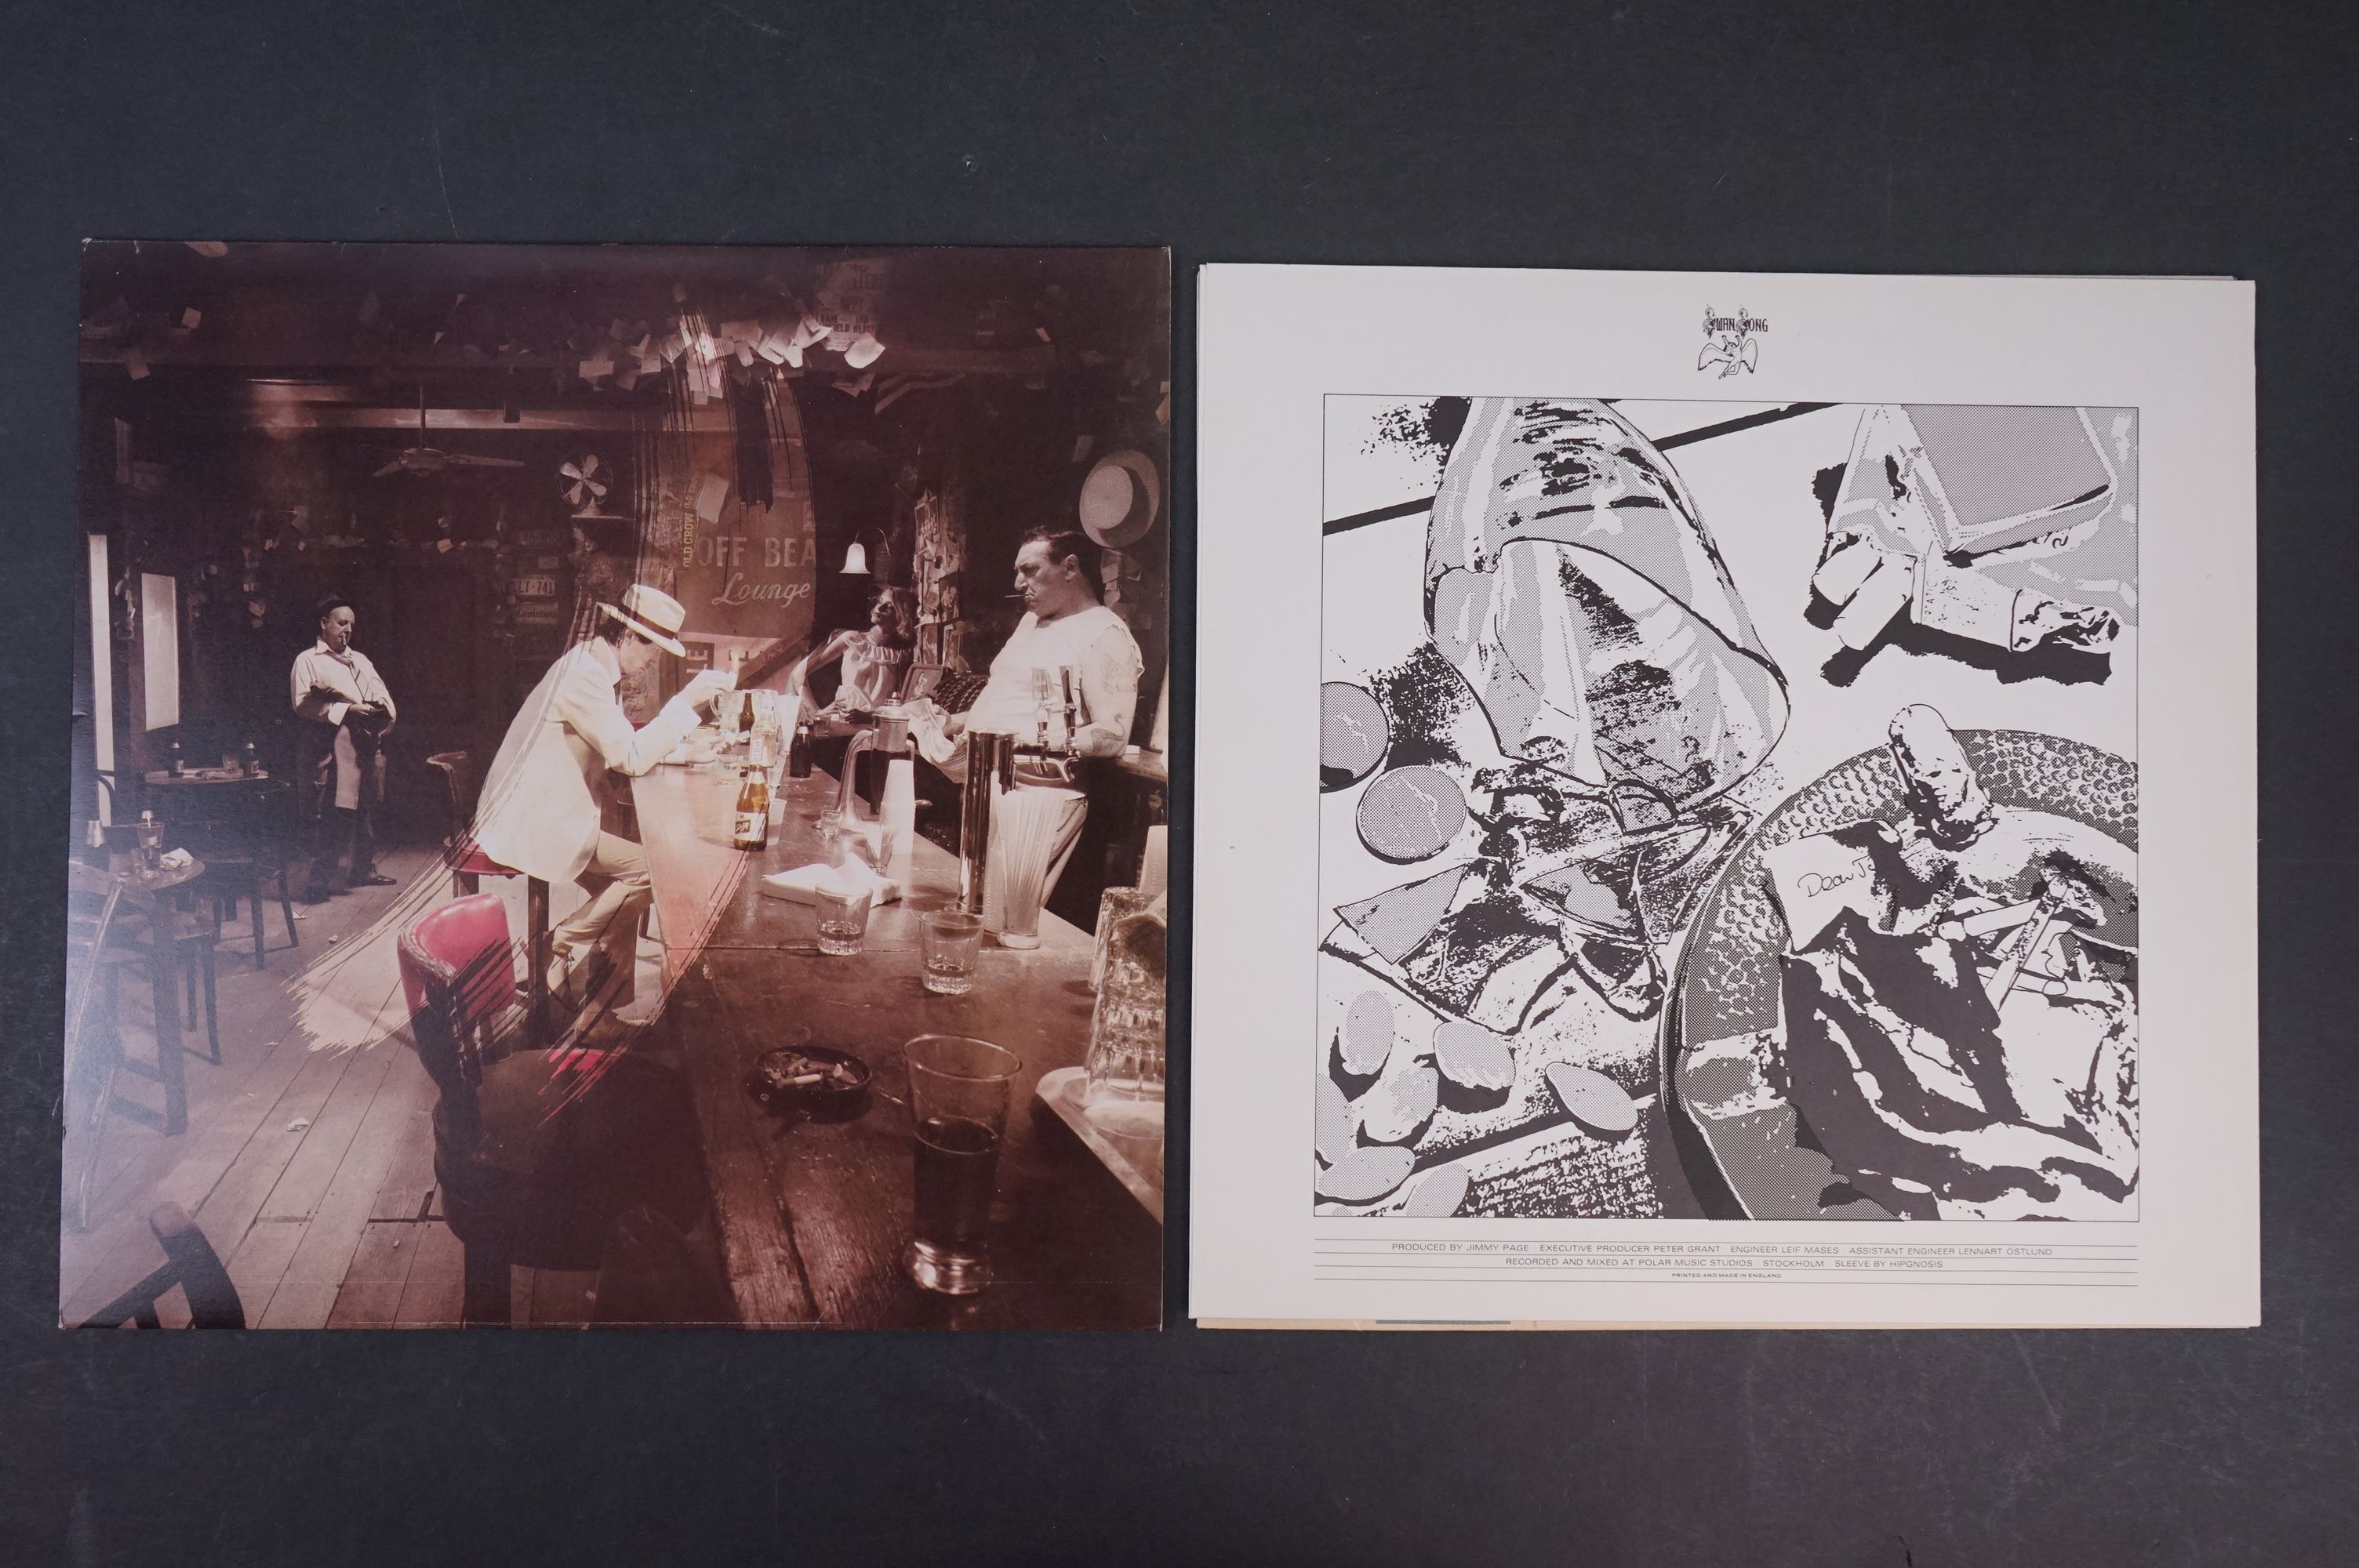 Vinyl - Six Led Zeppelin LPs to include In Through the Outdoor (cover D) SSK59410, Coda 790051, 2 - Image 15 of 17